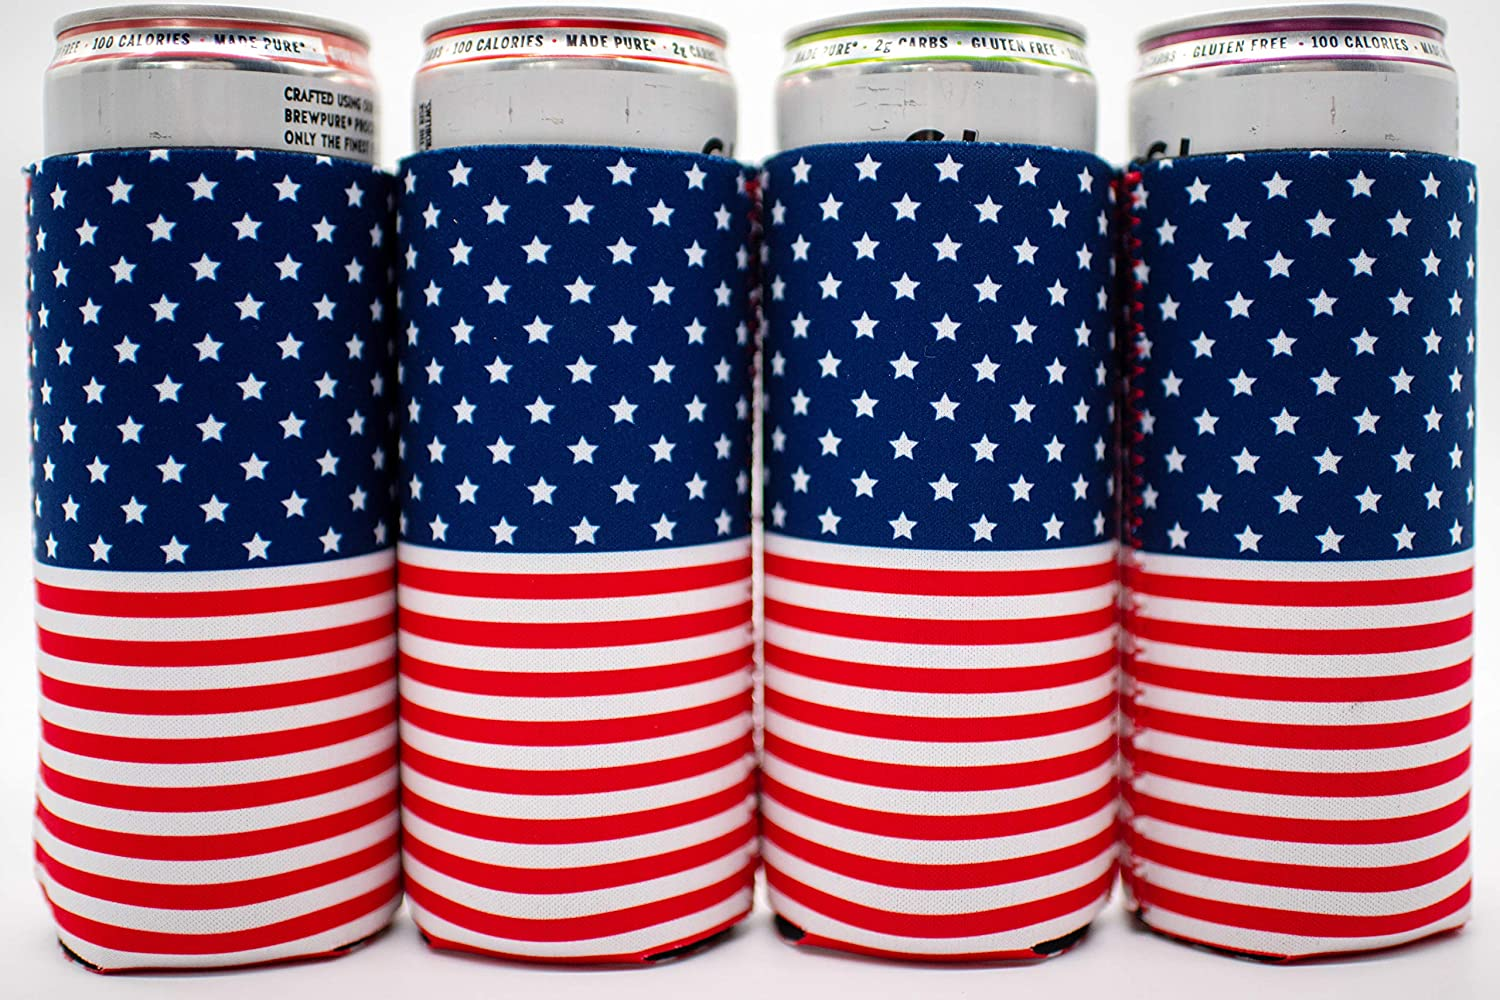 White /& Boozed  Slim Red Thin Can Cooler  4th of July of Patriotic Party  12oz cozies for spiked seltzer cans Skinny